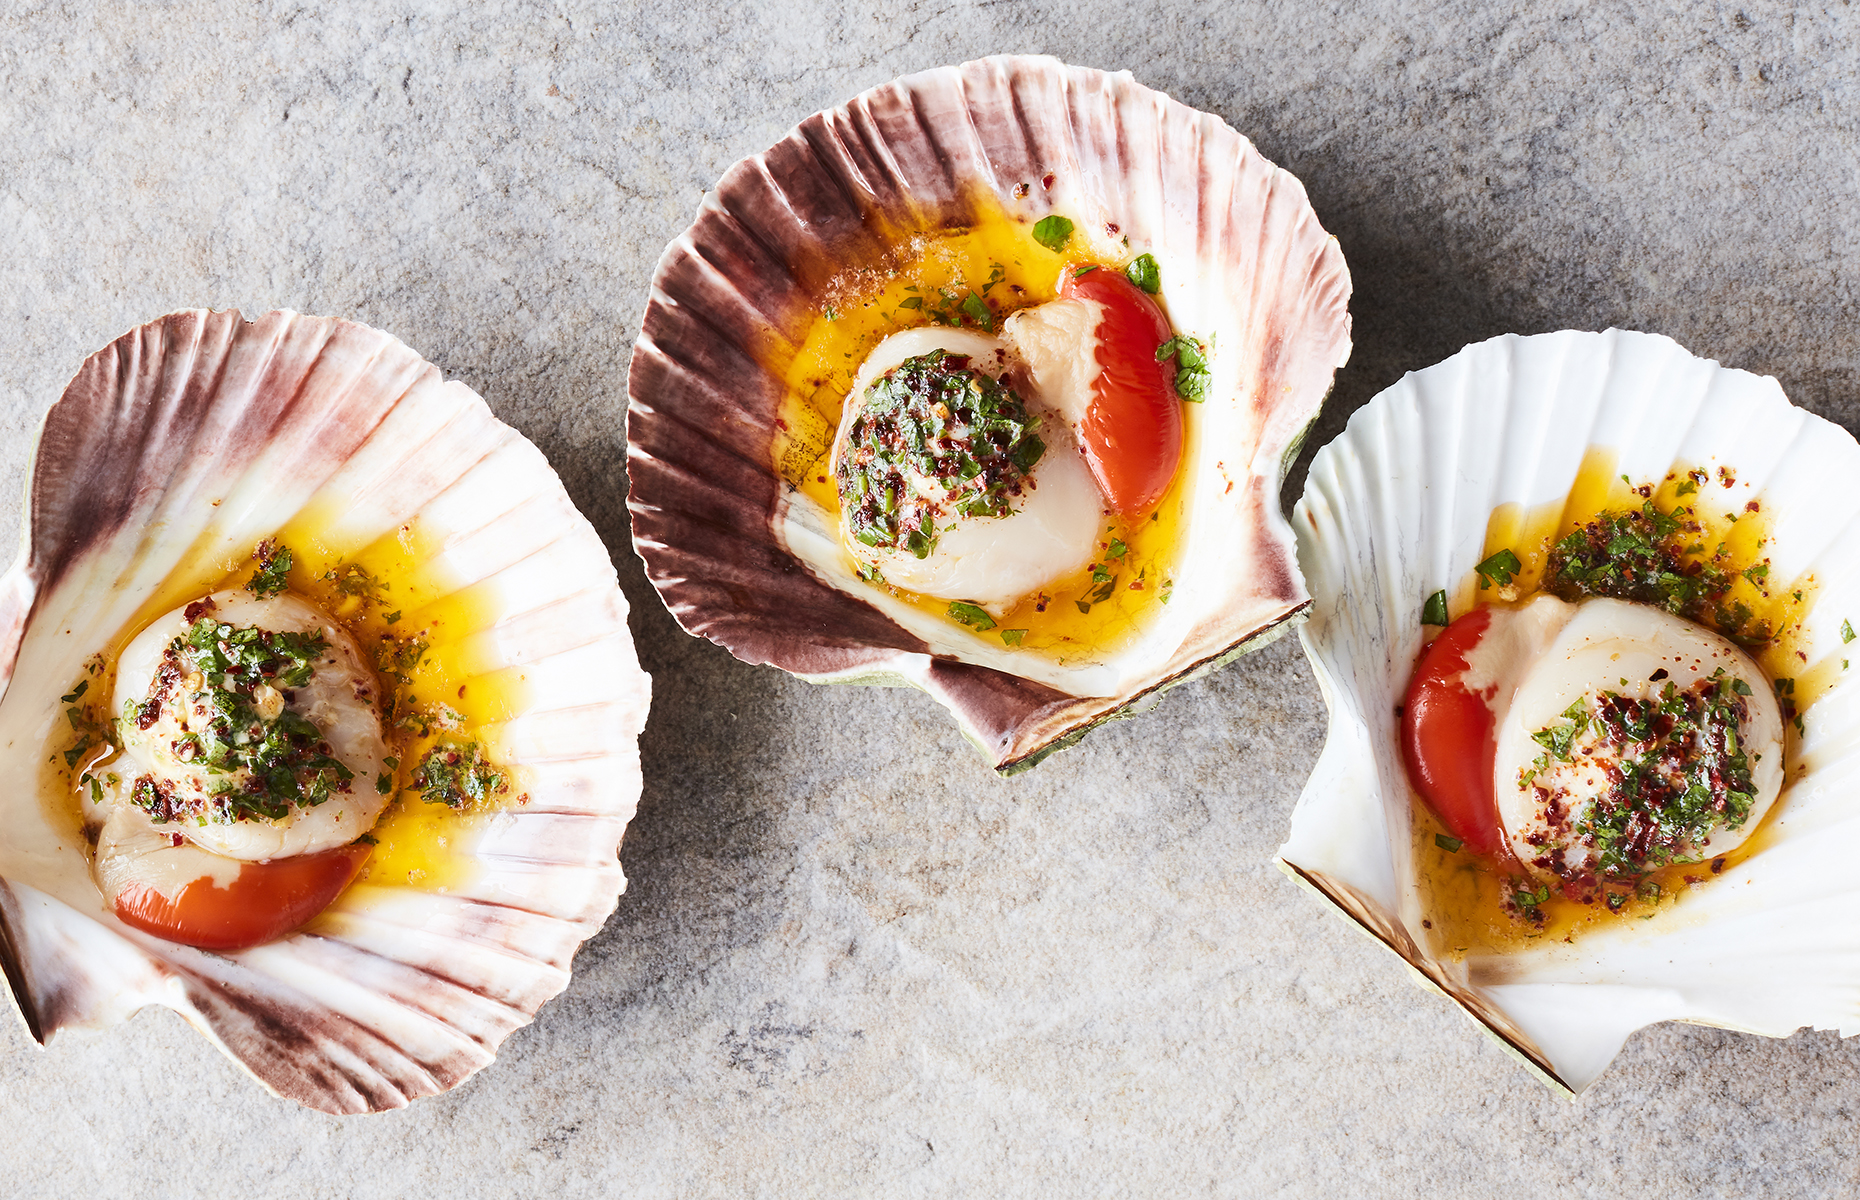 Baked scallops with chipotle butter (Image: Share/Ryland Peters & Small)